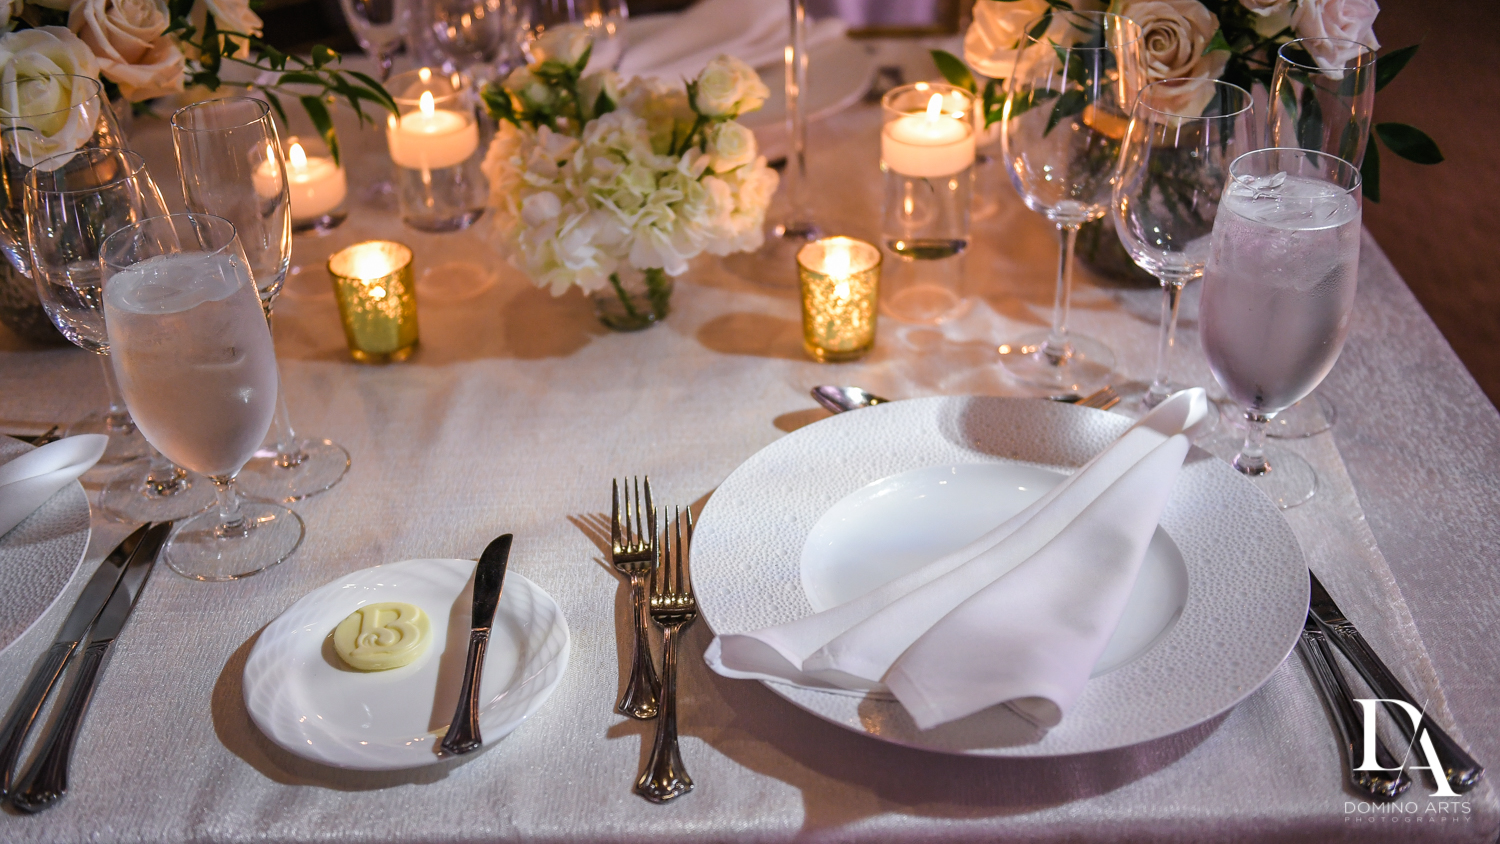 table setting at Extravagant Wedding at The Breakers Palm Beach by Domino Arts Photography